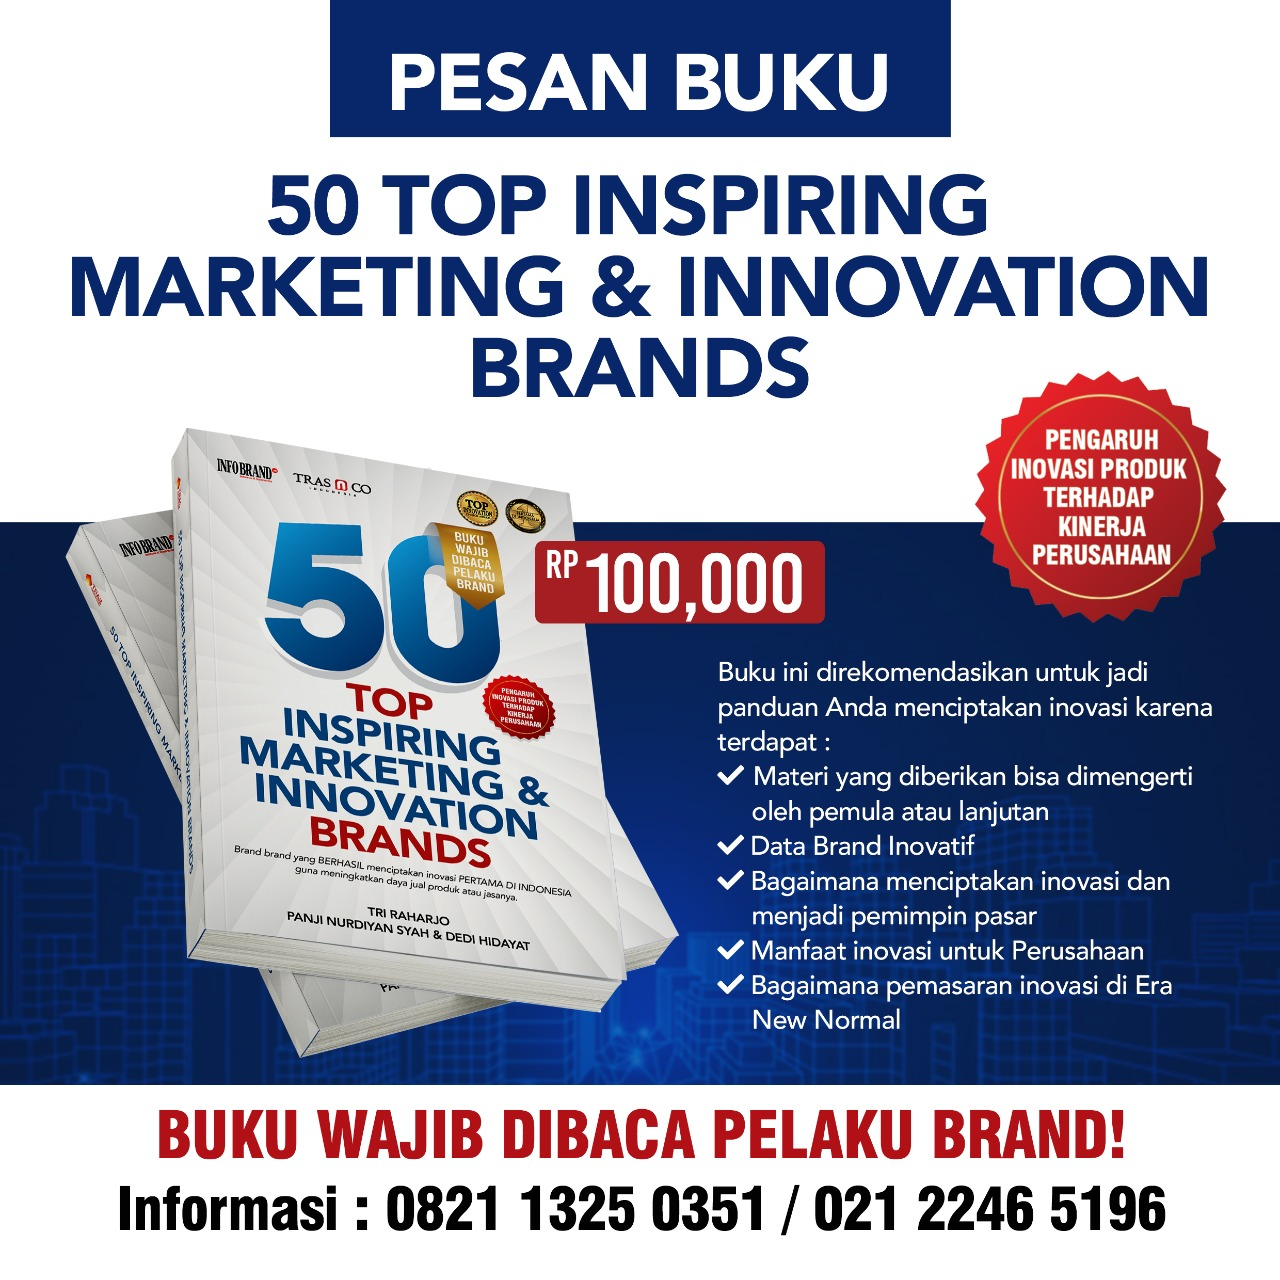 Buku 50 TOP INSPIRING MARKETING & INNOVATION BRANDS